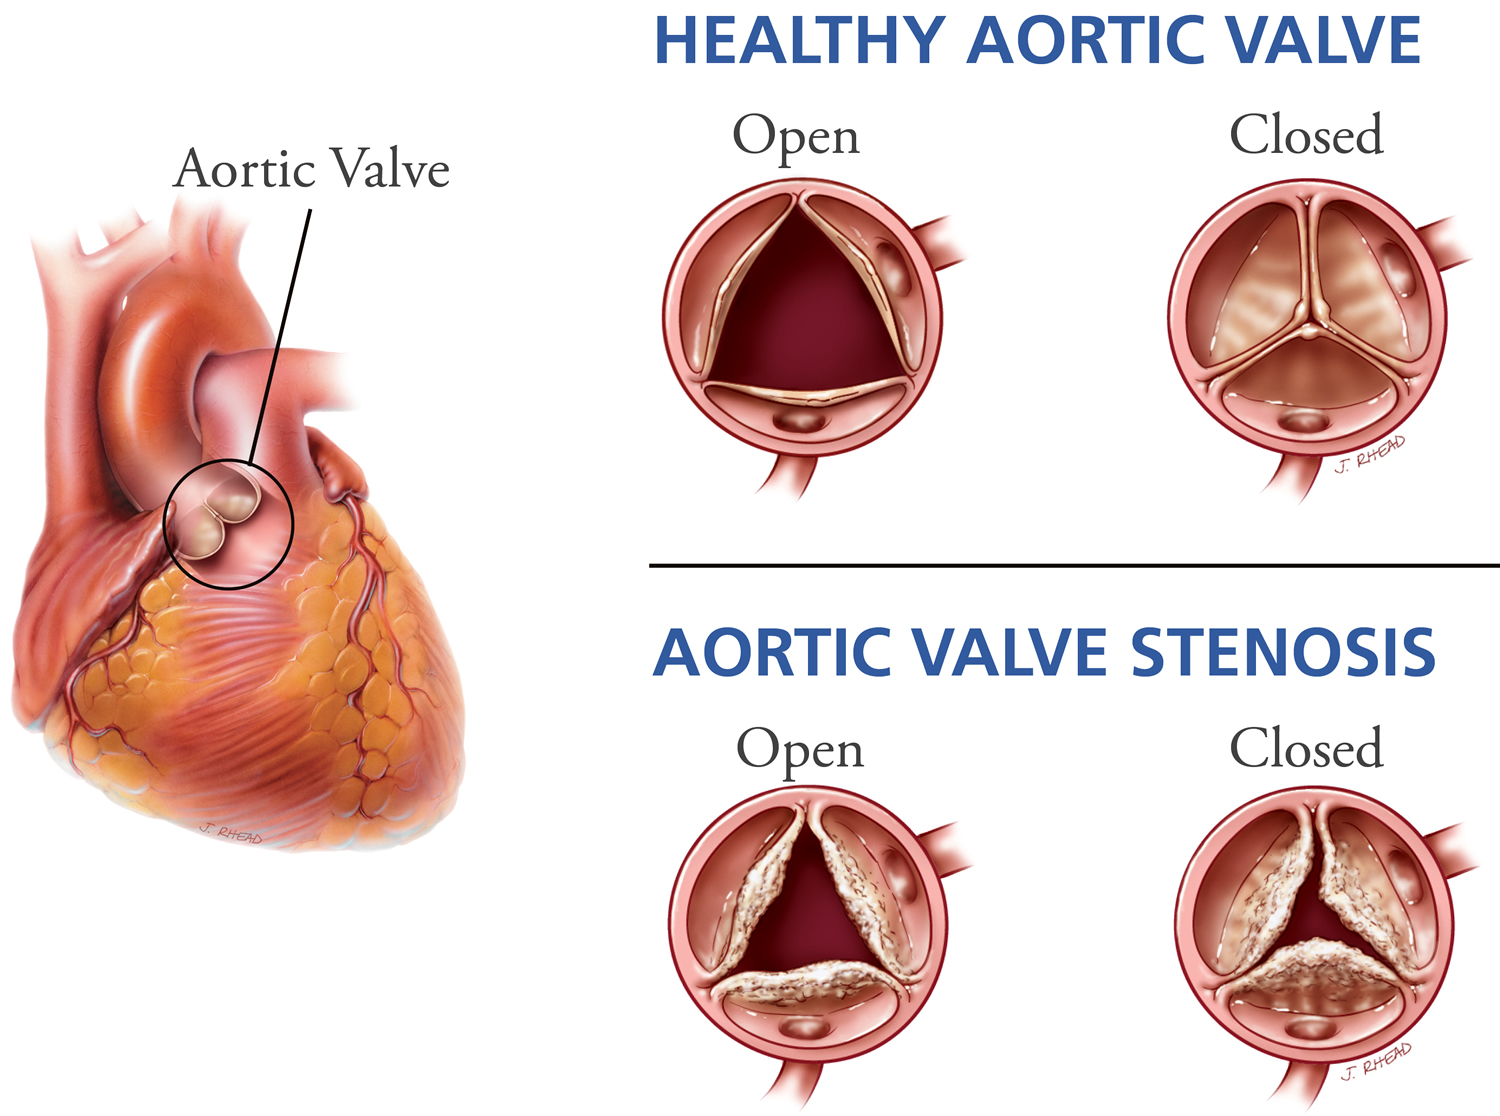 aortic valve stenosis - causes, symptoms, life expectancy, treatment